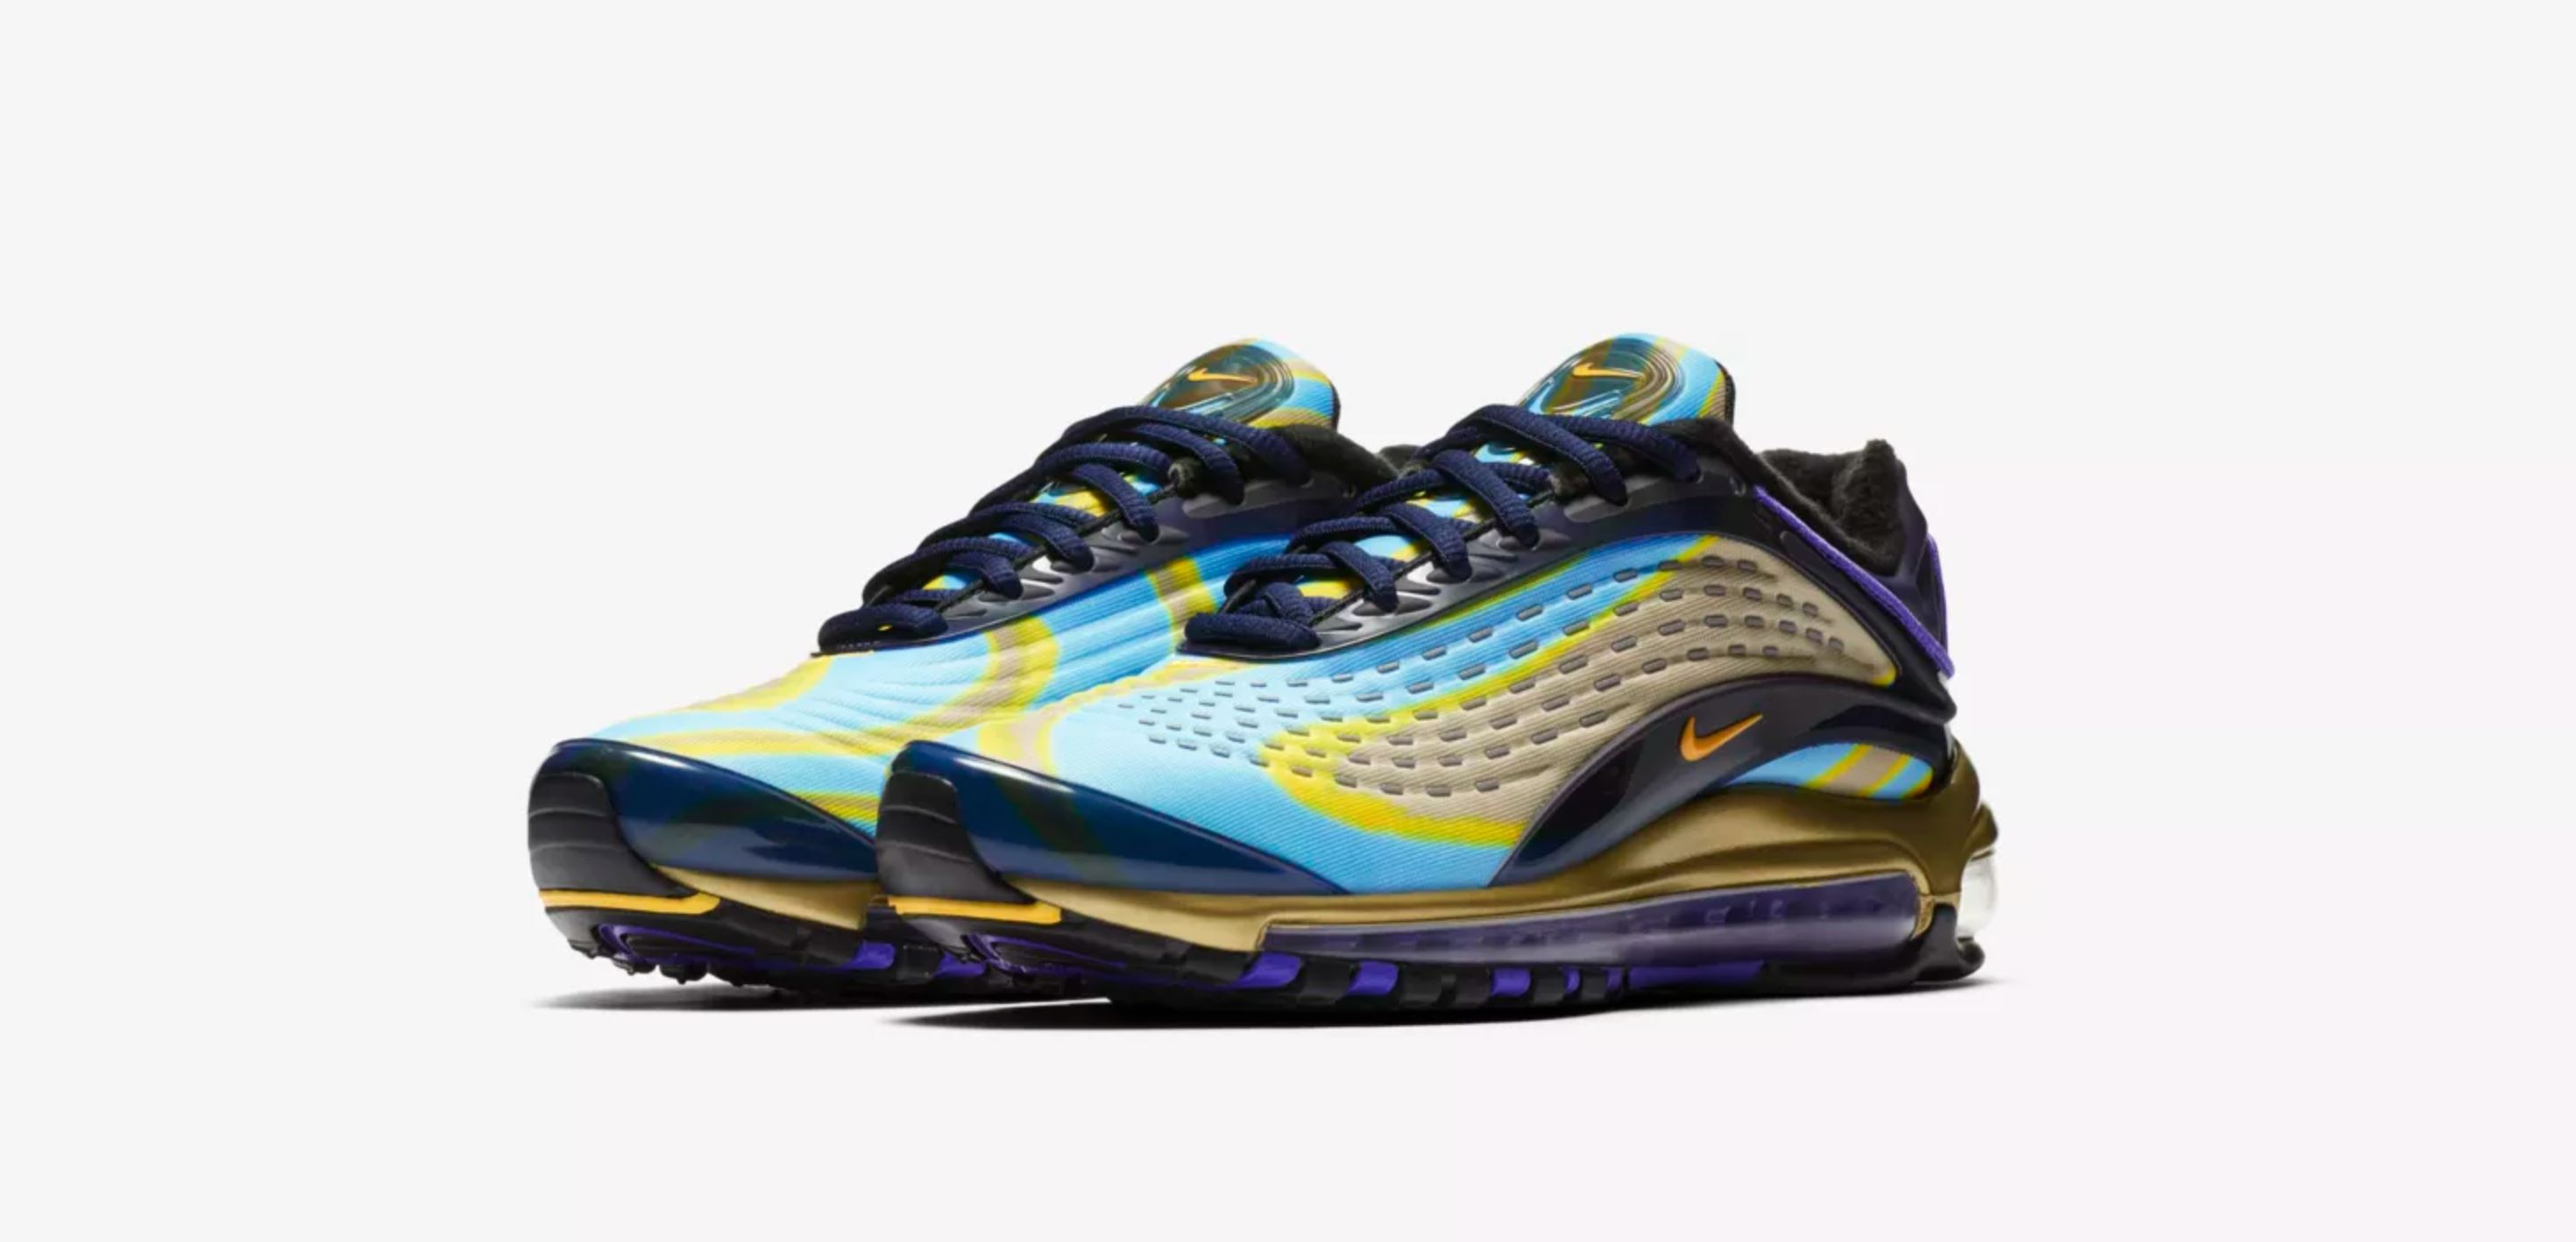 The Nike Air Max Deluxe Photo Blue Will Be Releasing